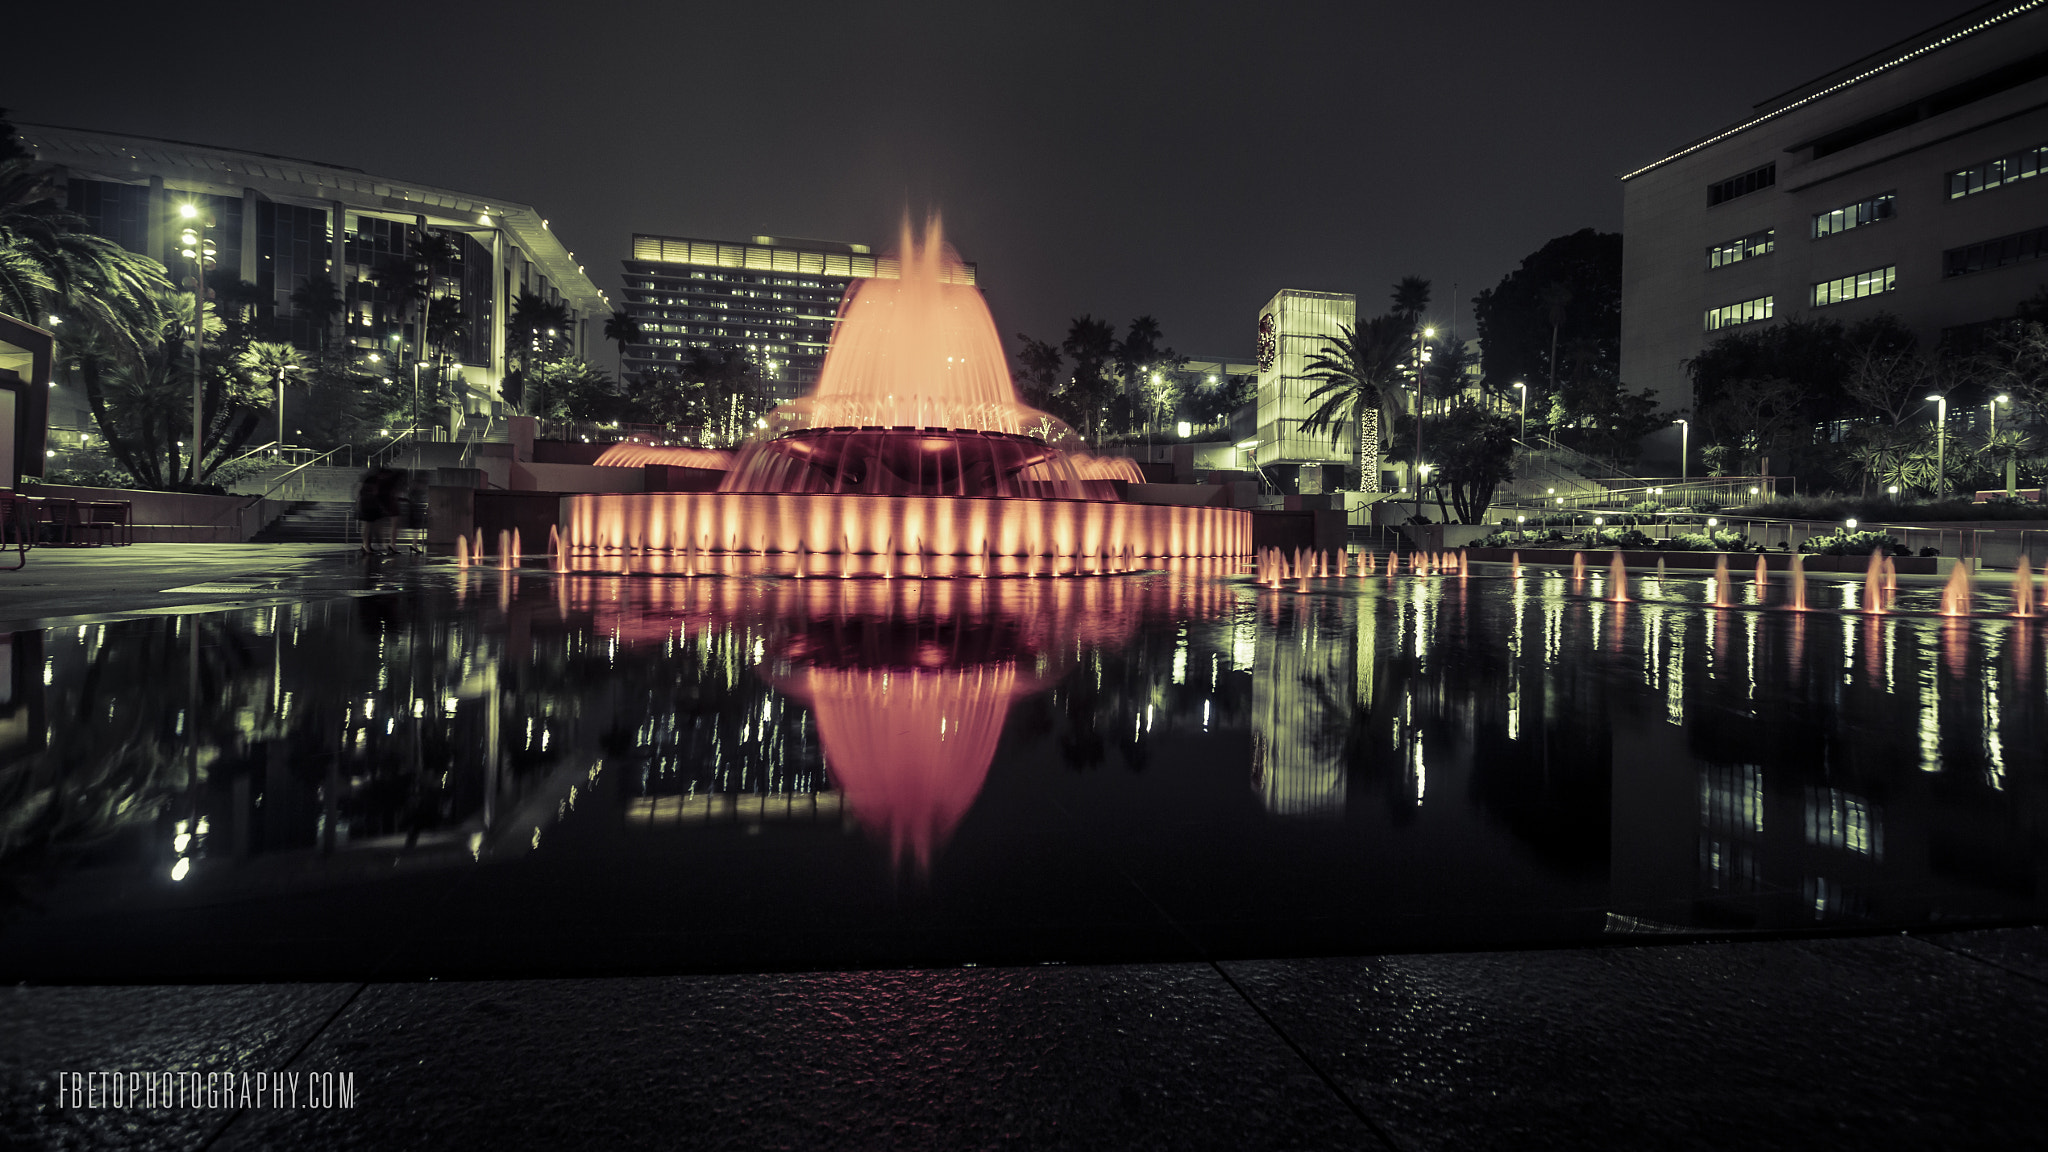 Photograph Arthur J. Will Memorial Fountain by Fernando De Oliveira on 500px